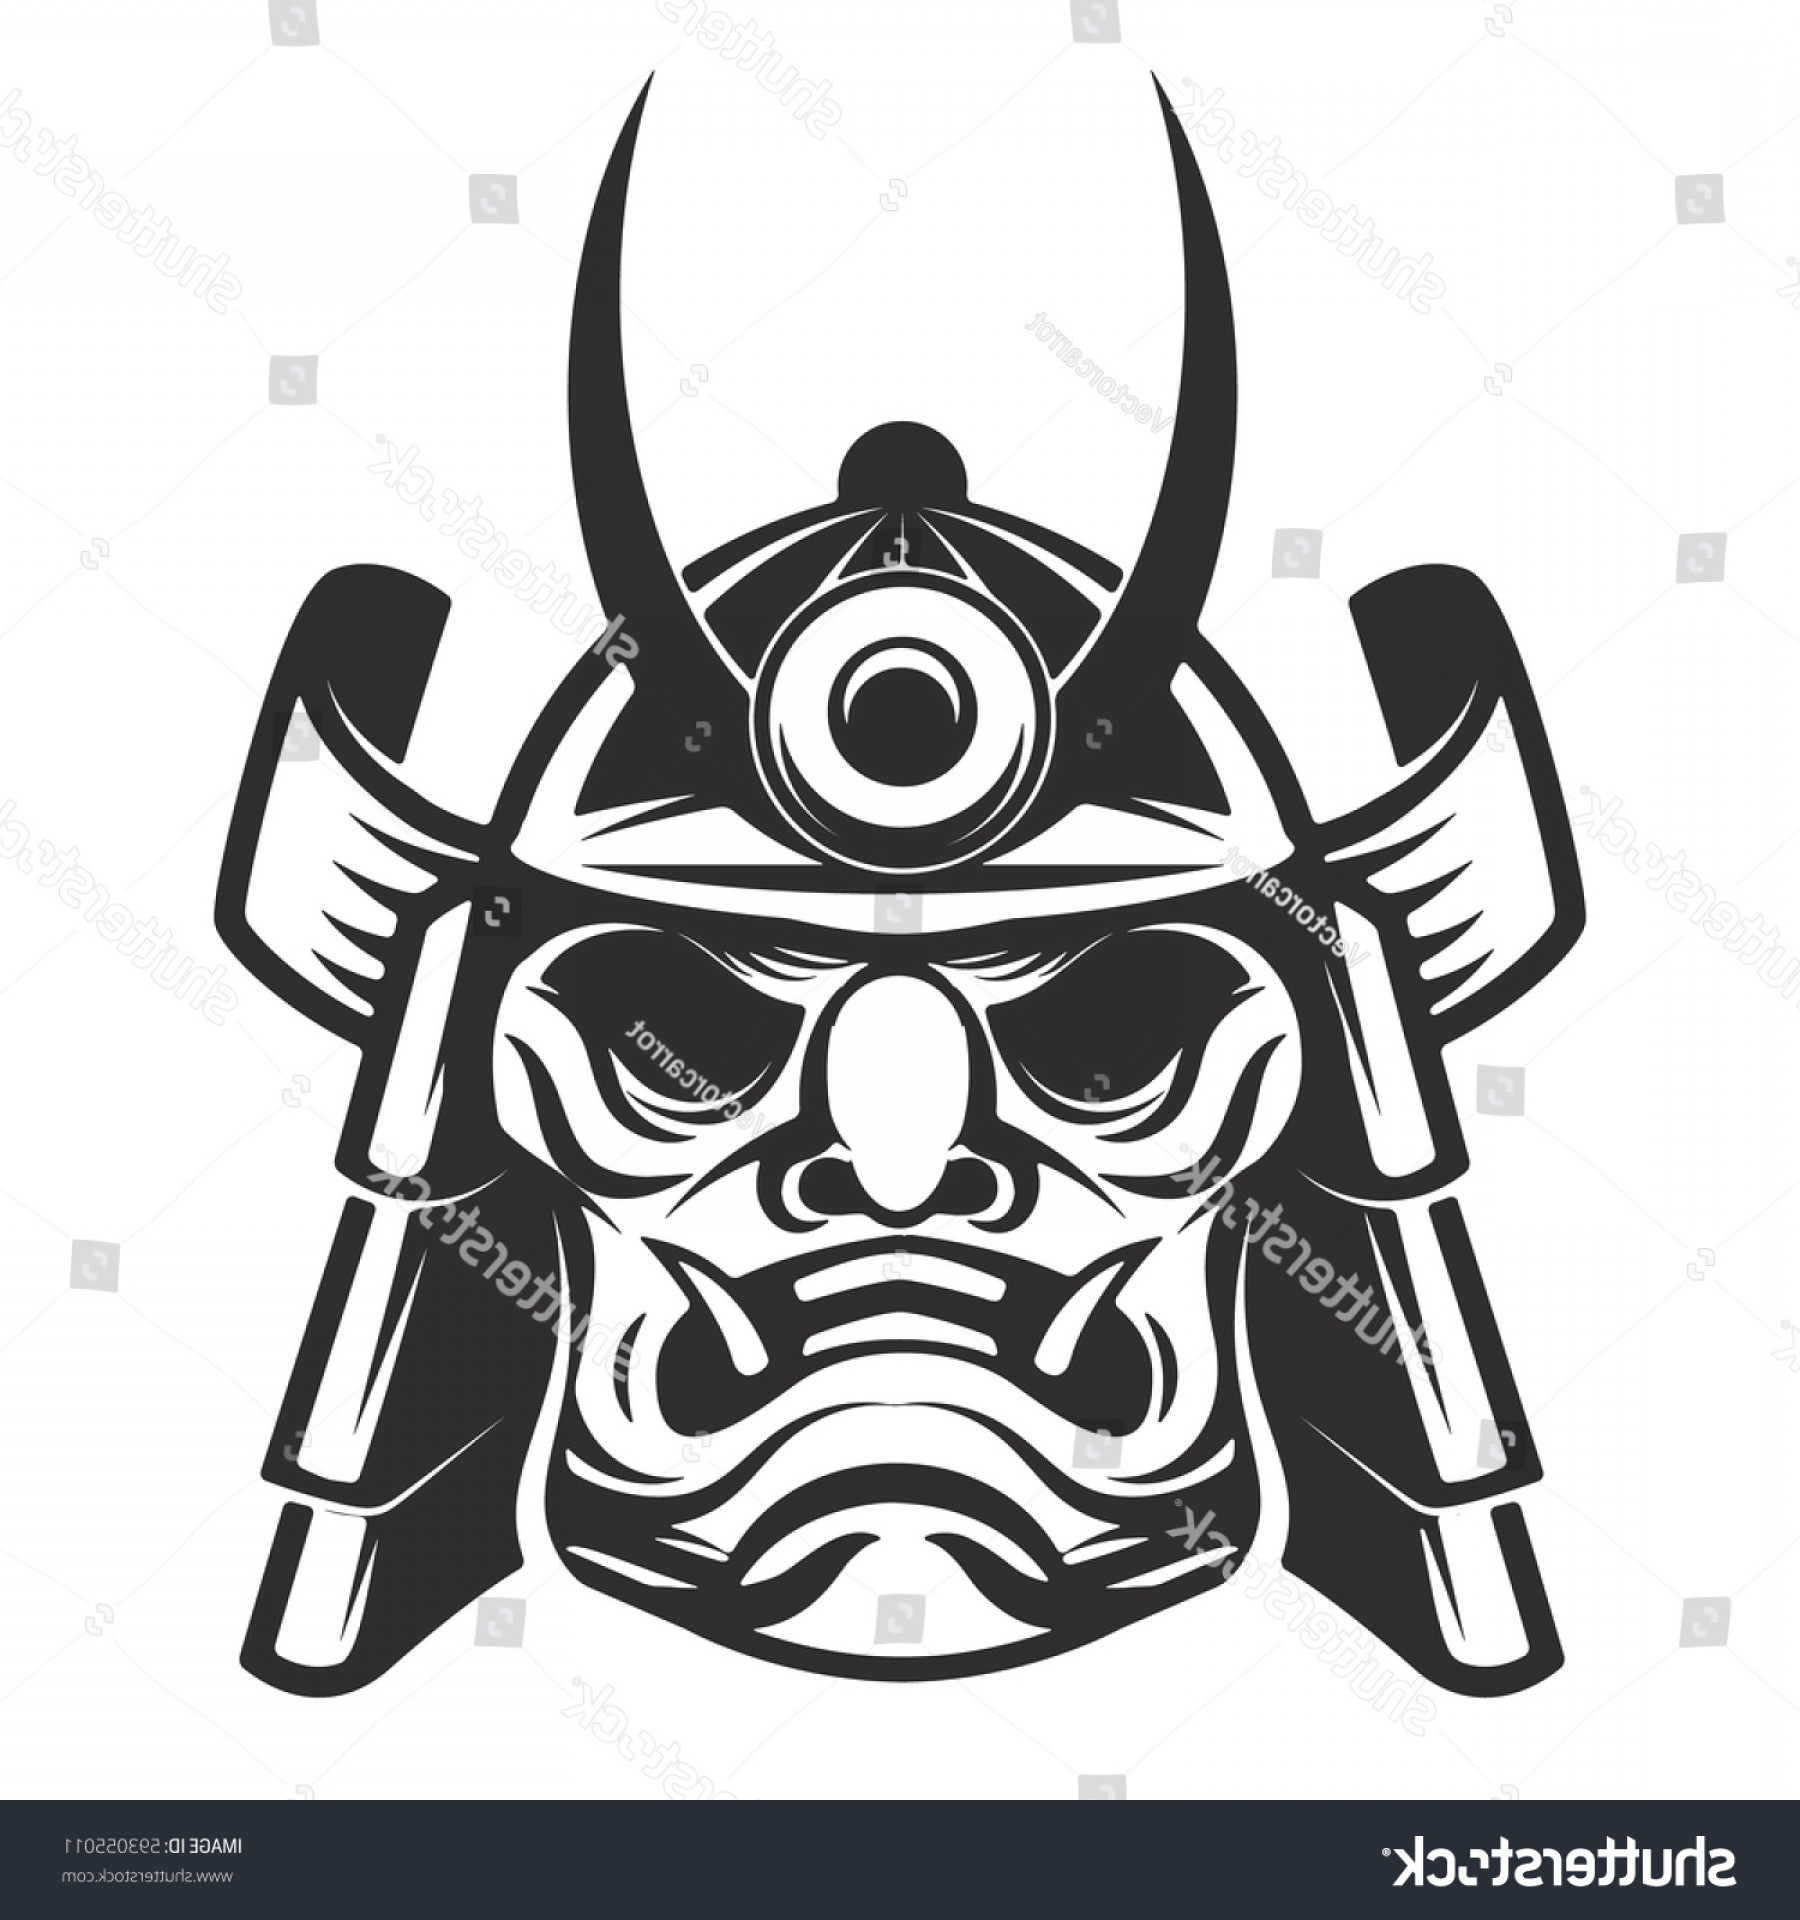 Samurai Warrior Vector: Samurai Warrior Helmet Isolated On White